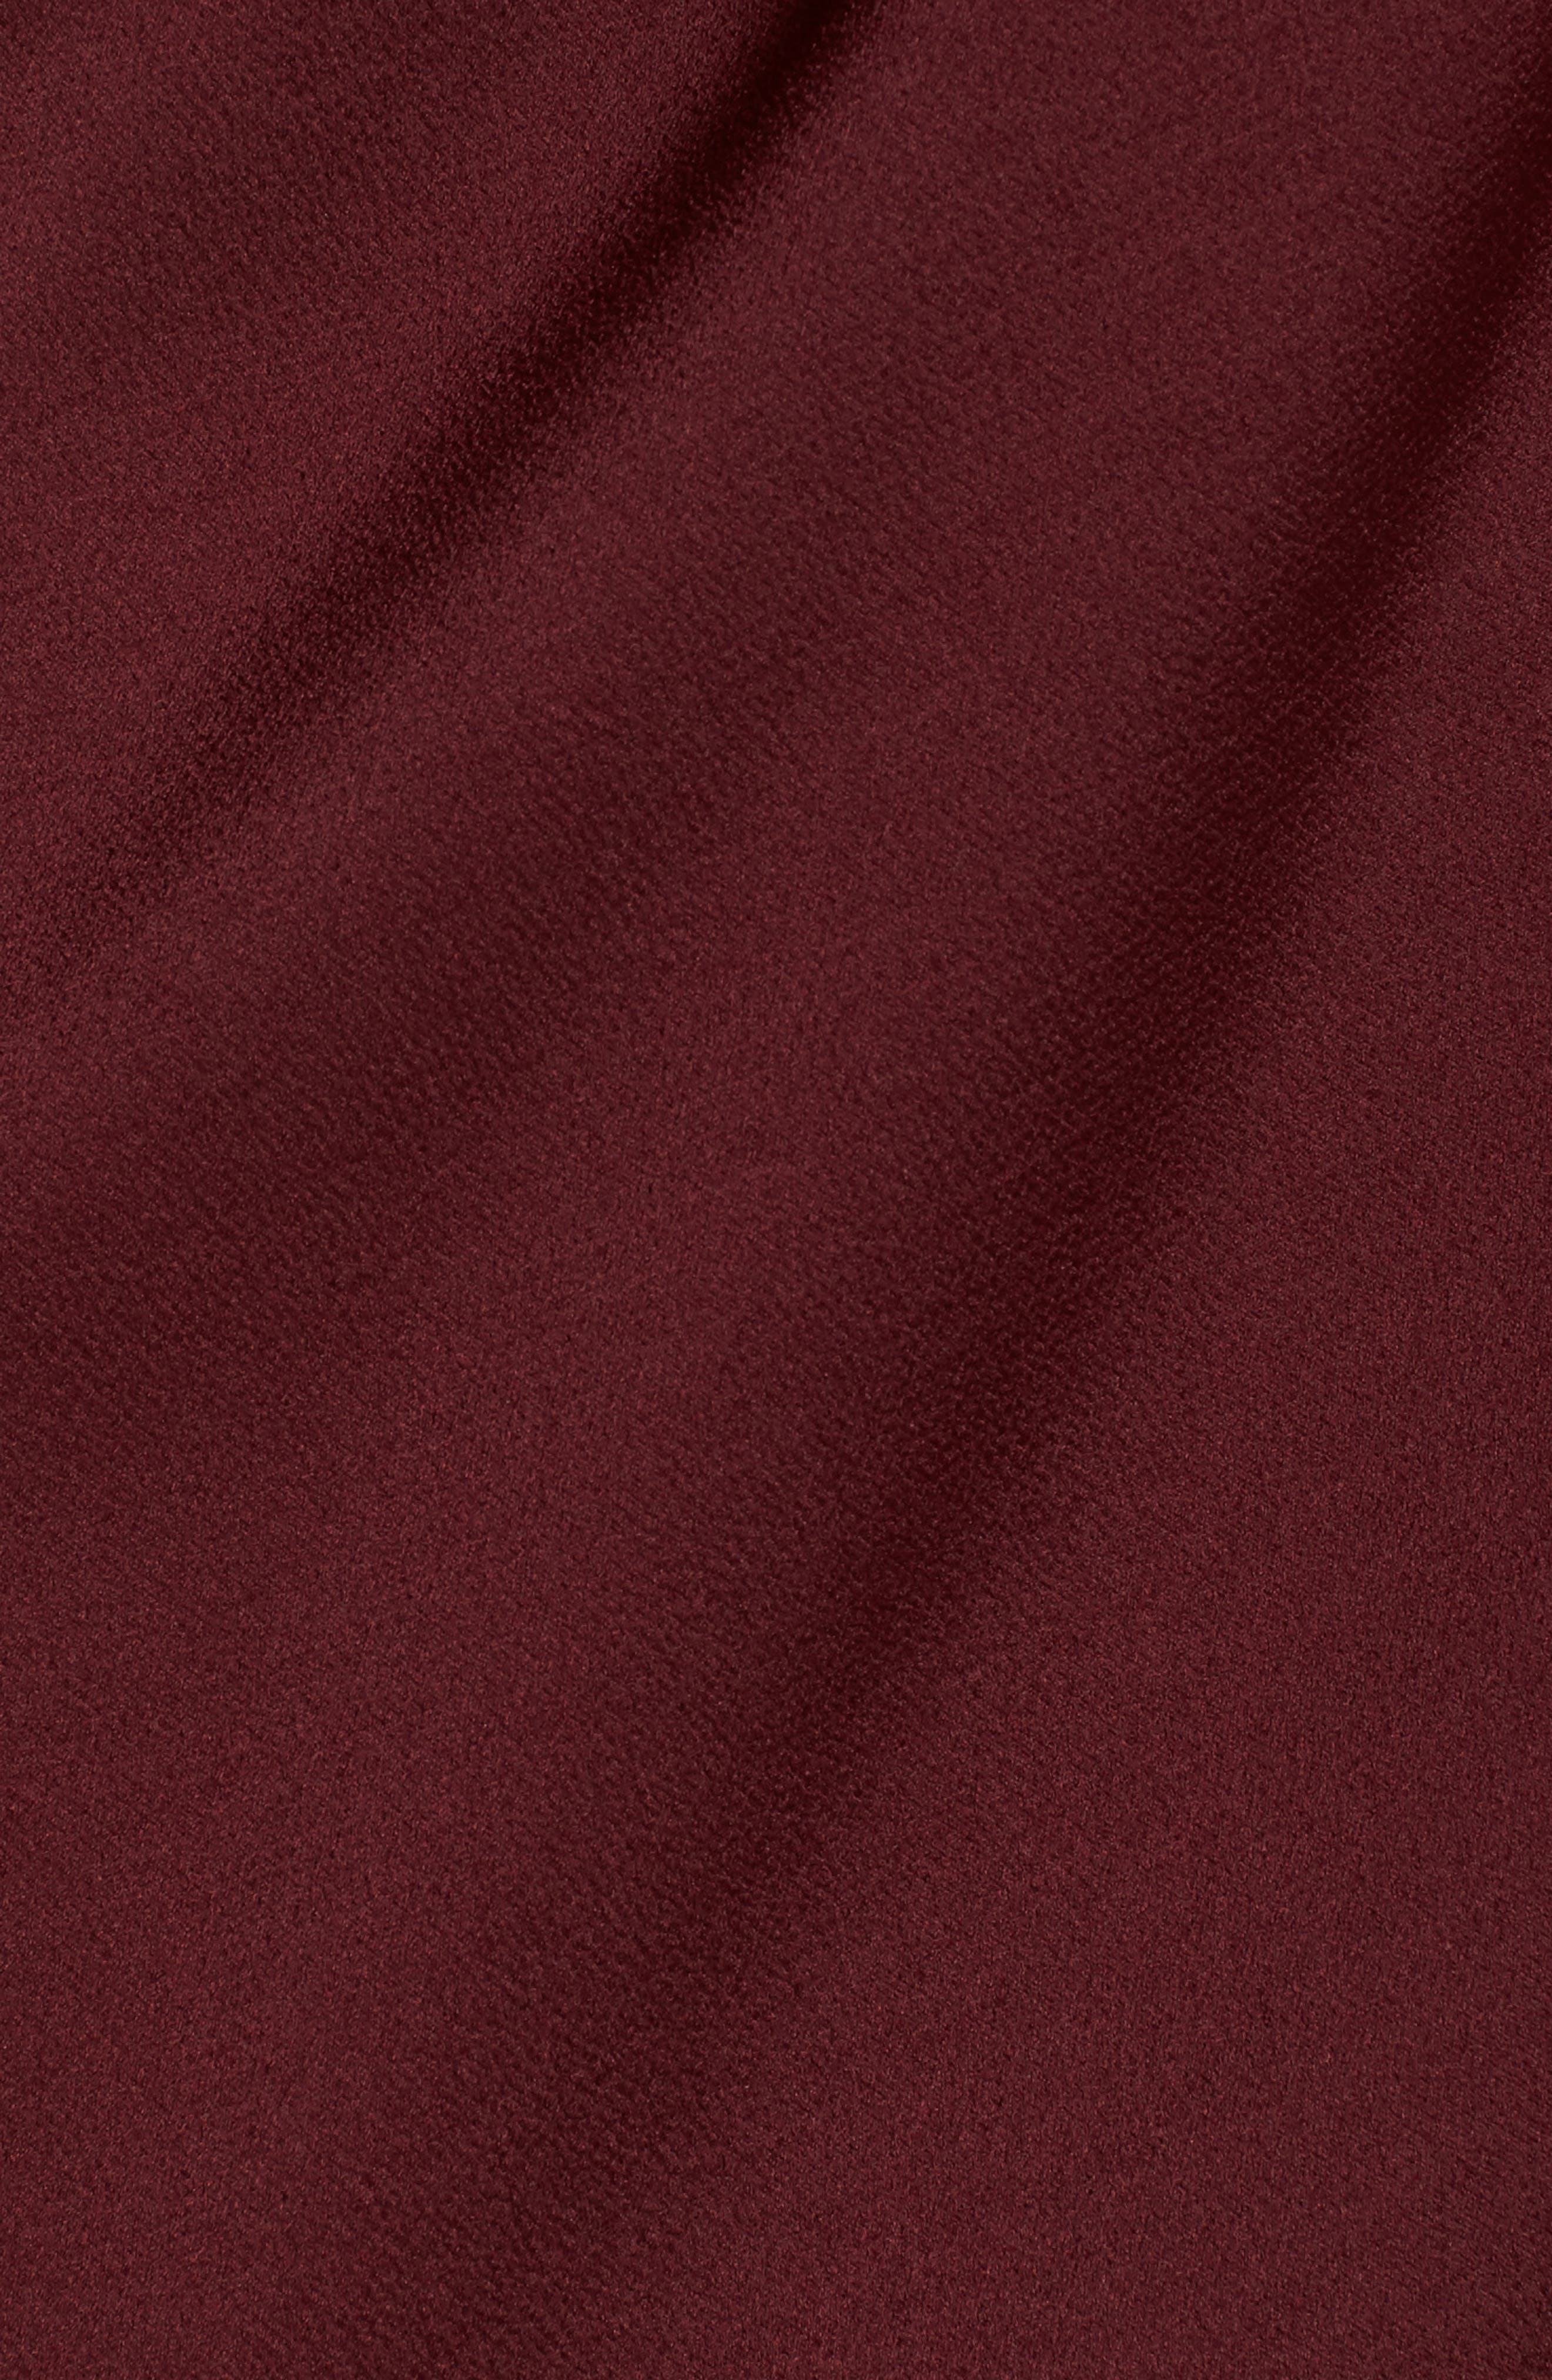 Luxe Plunging Frill Maxi Dress,                             Alternate thumbnail 5, color,                             Garnet